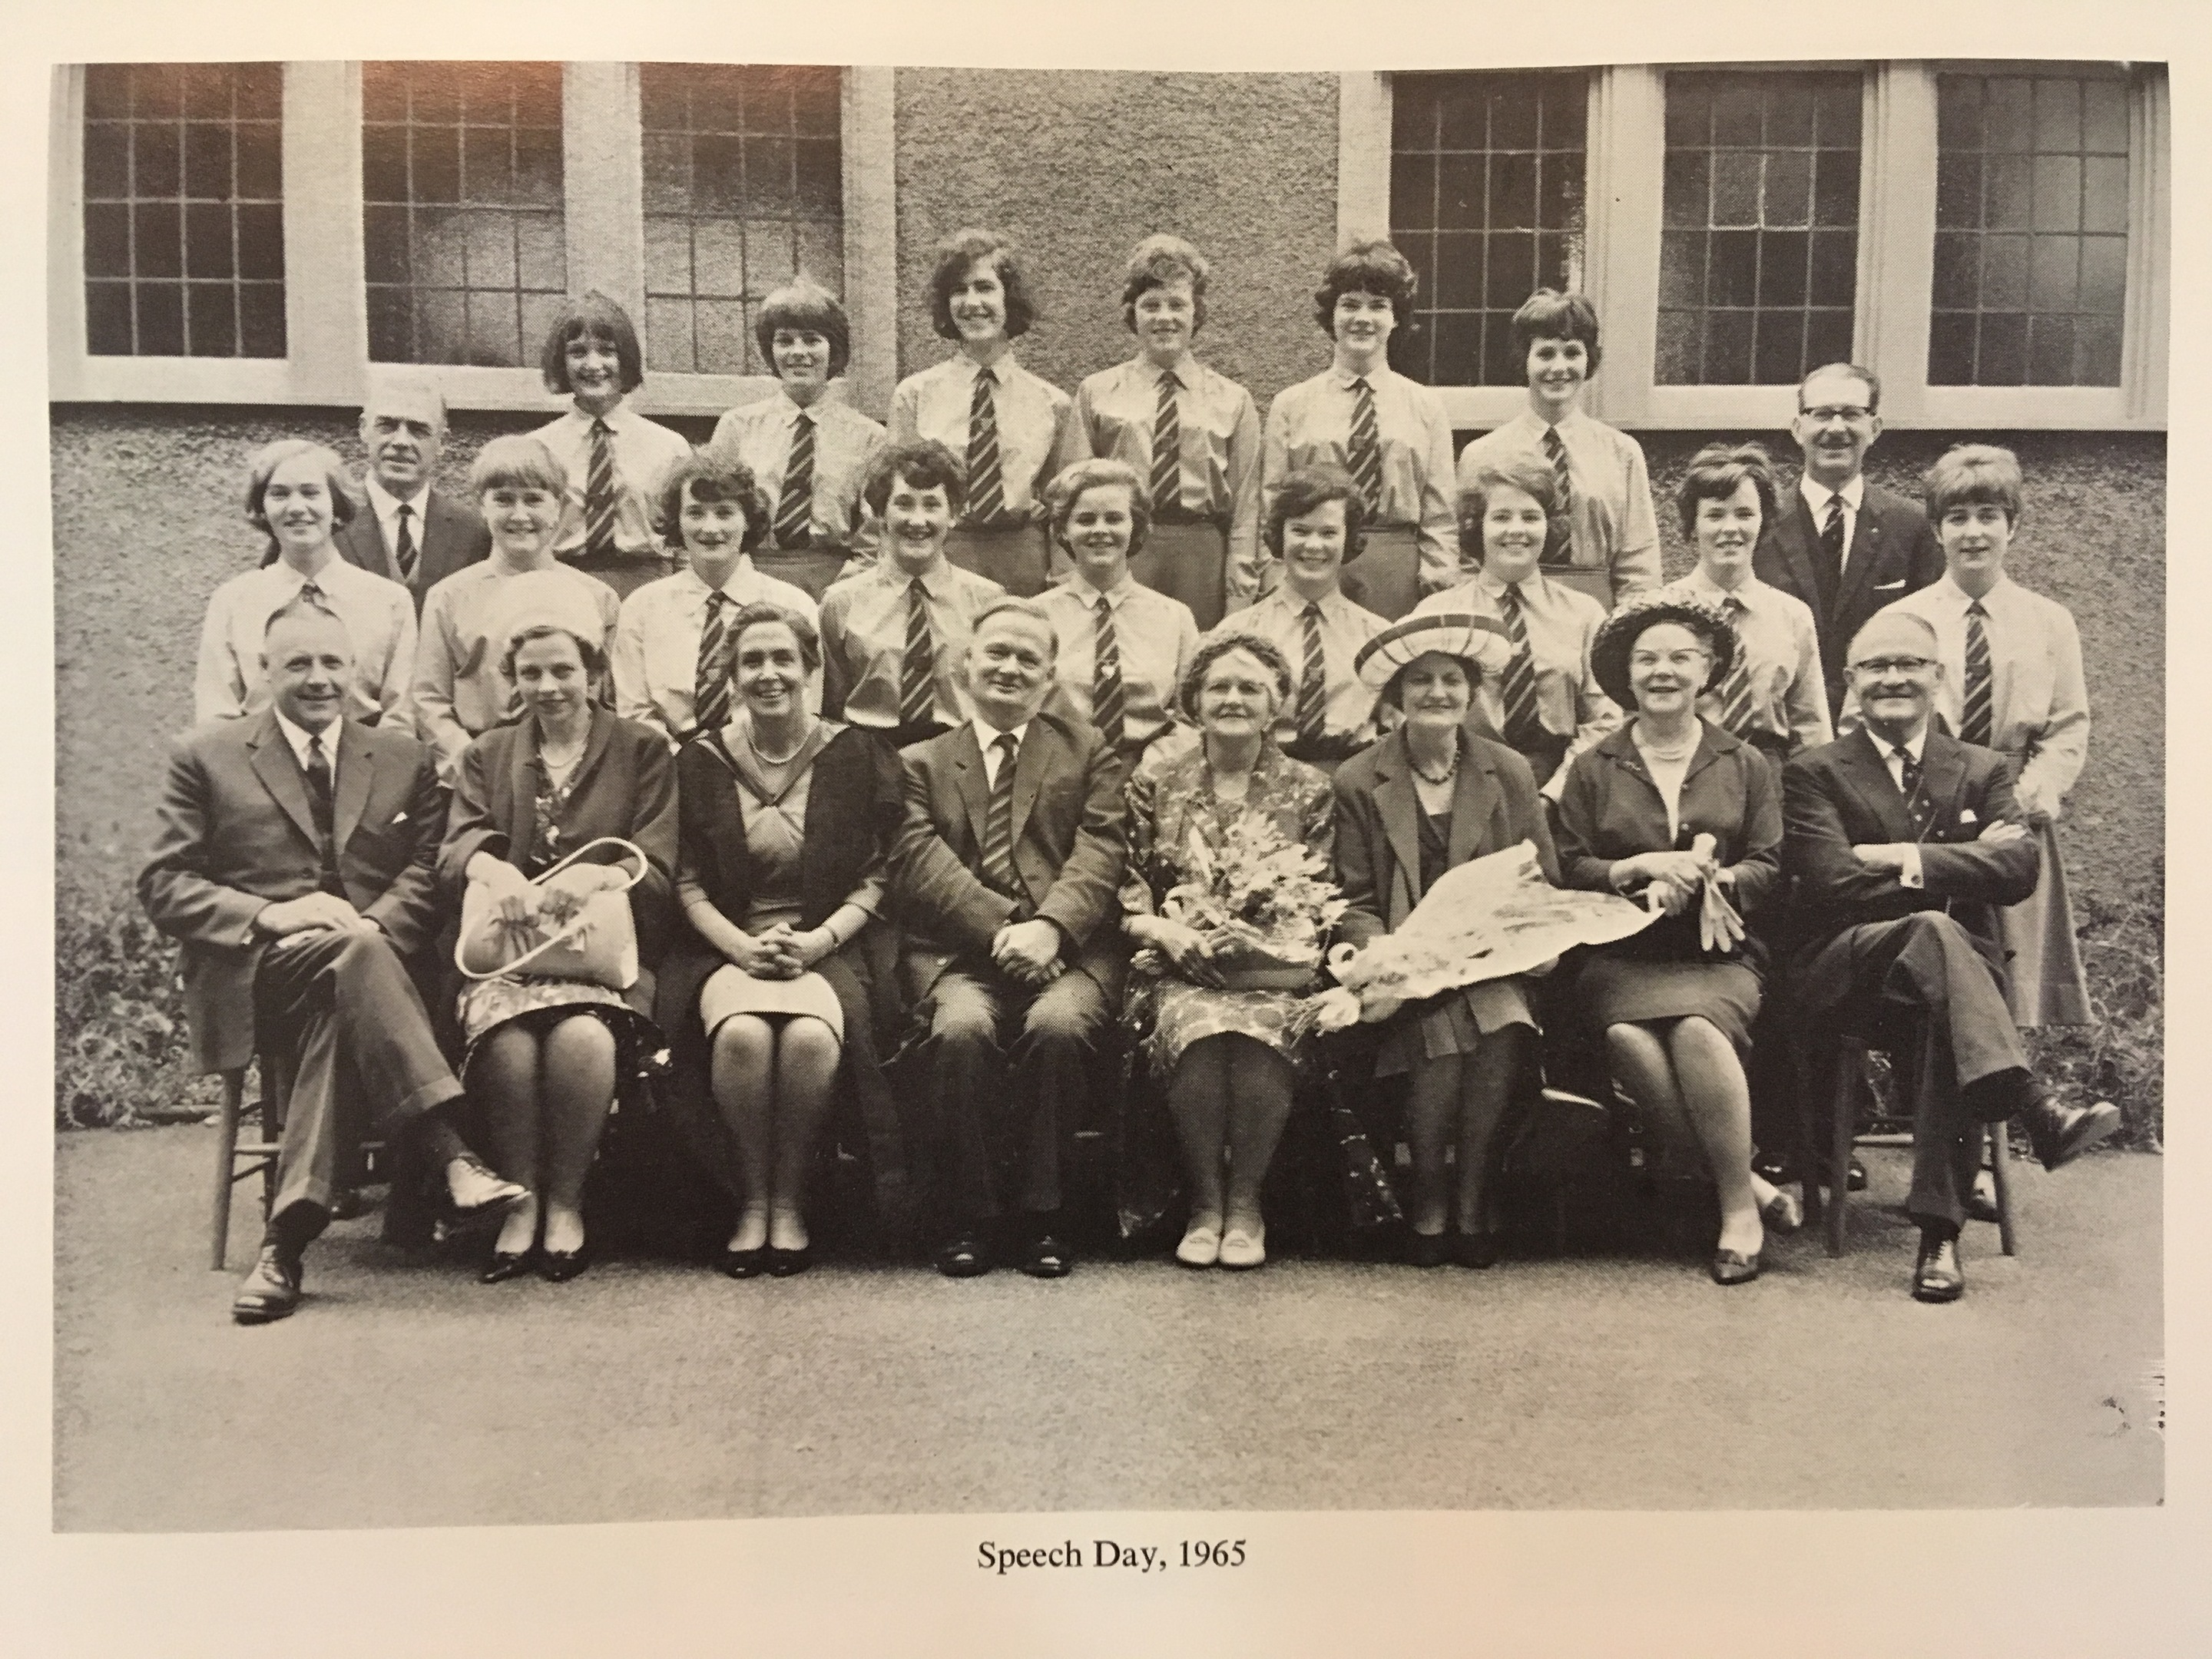 Tessa Jowell, back row furthest left, in her leaving year of 1965 at St Margaret's School in Aberdeen